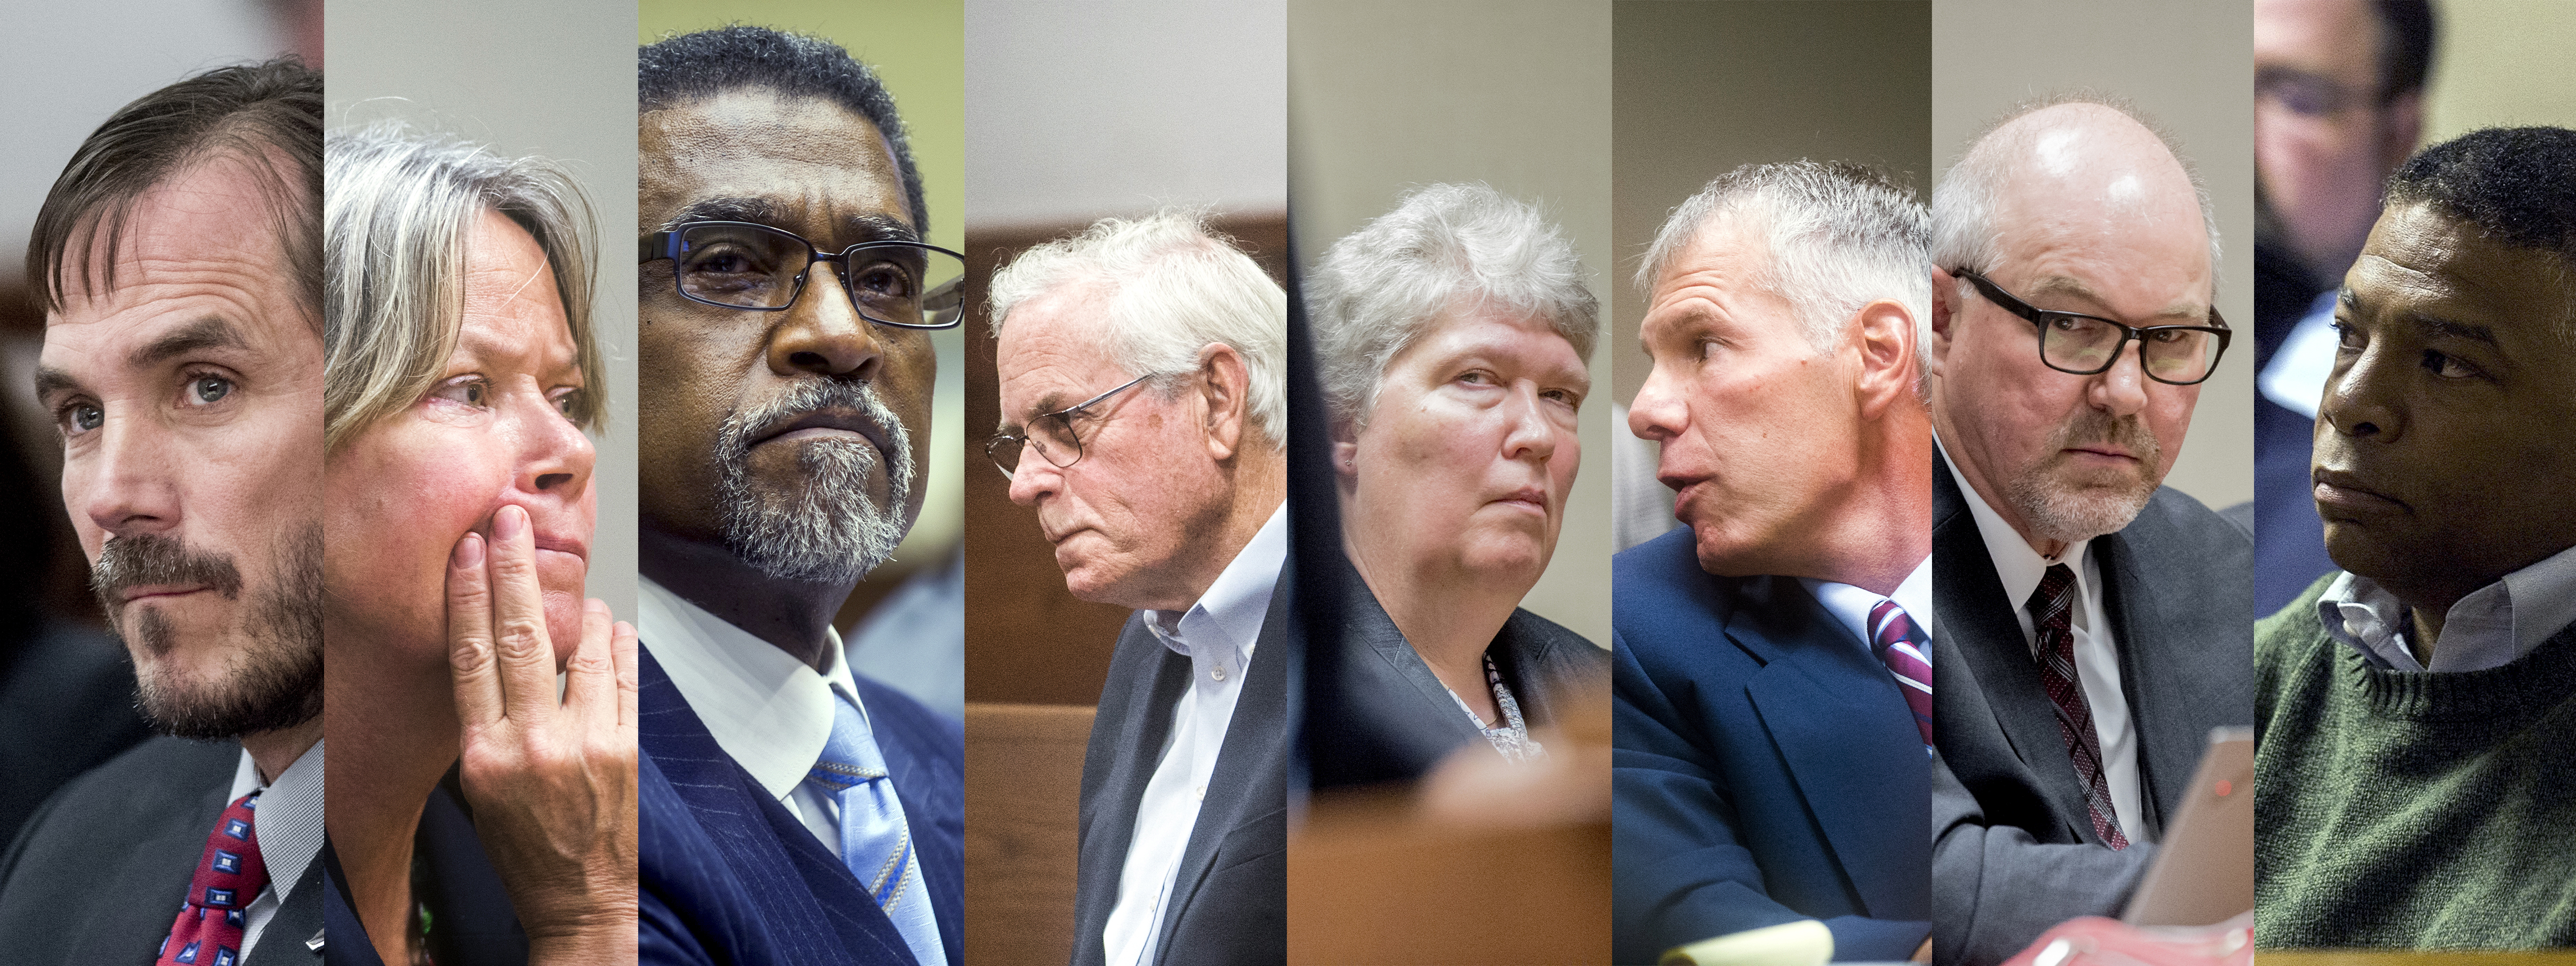 MSU, Flint water cases show difficulty of holding public officials criminally culpable